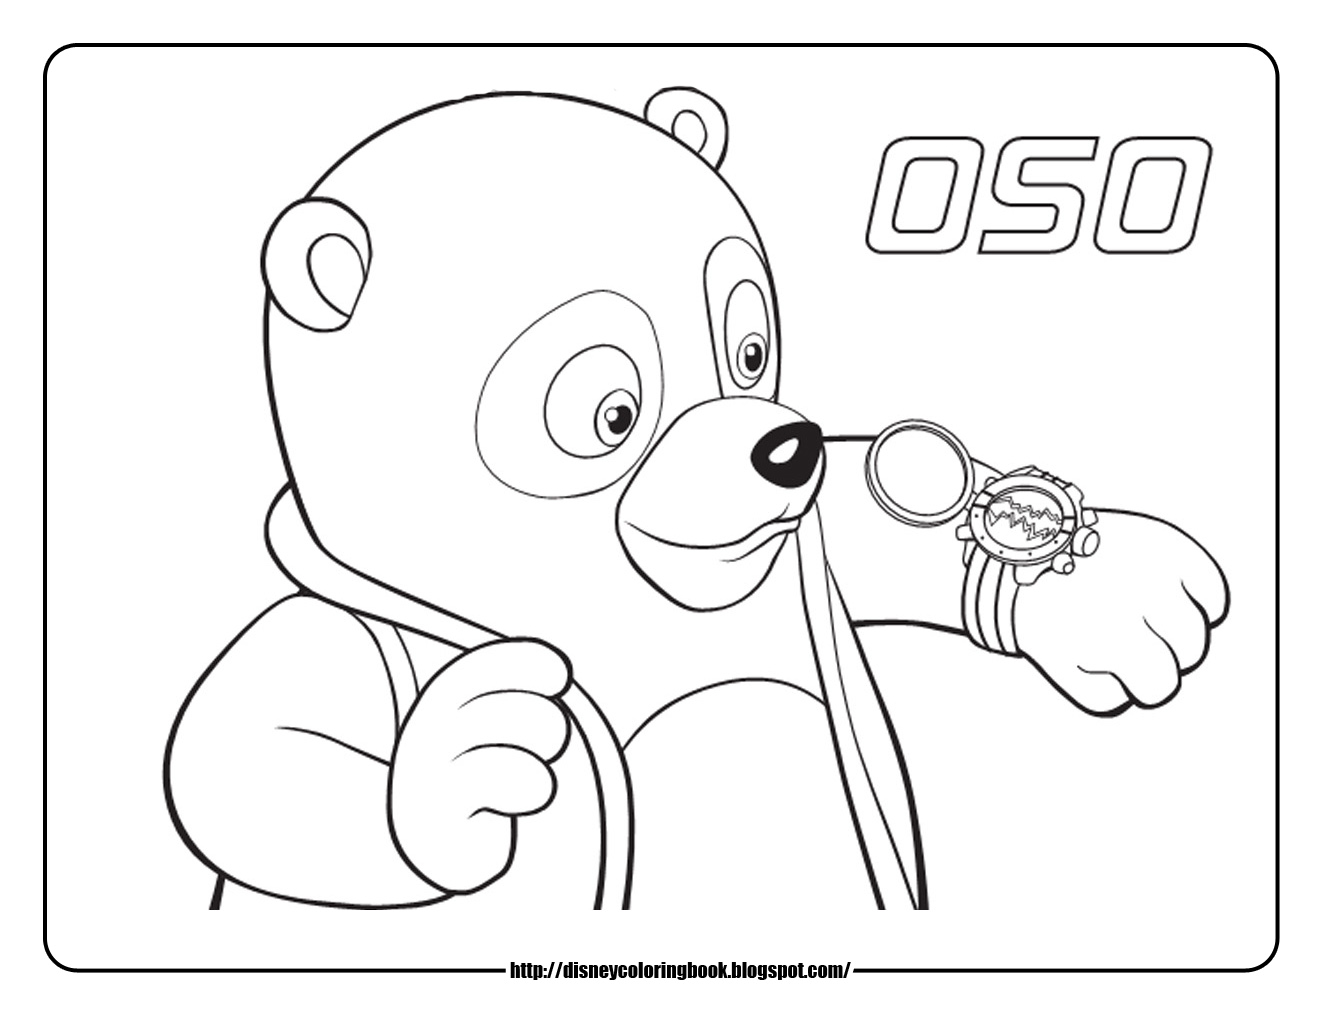 Dibujos Para Colorear Disney Junior: Special Agent Oso 1: Free Disney Coloring Sheets